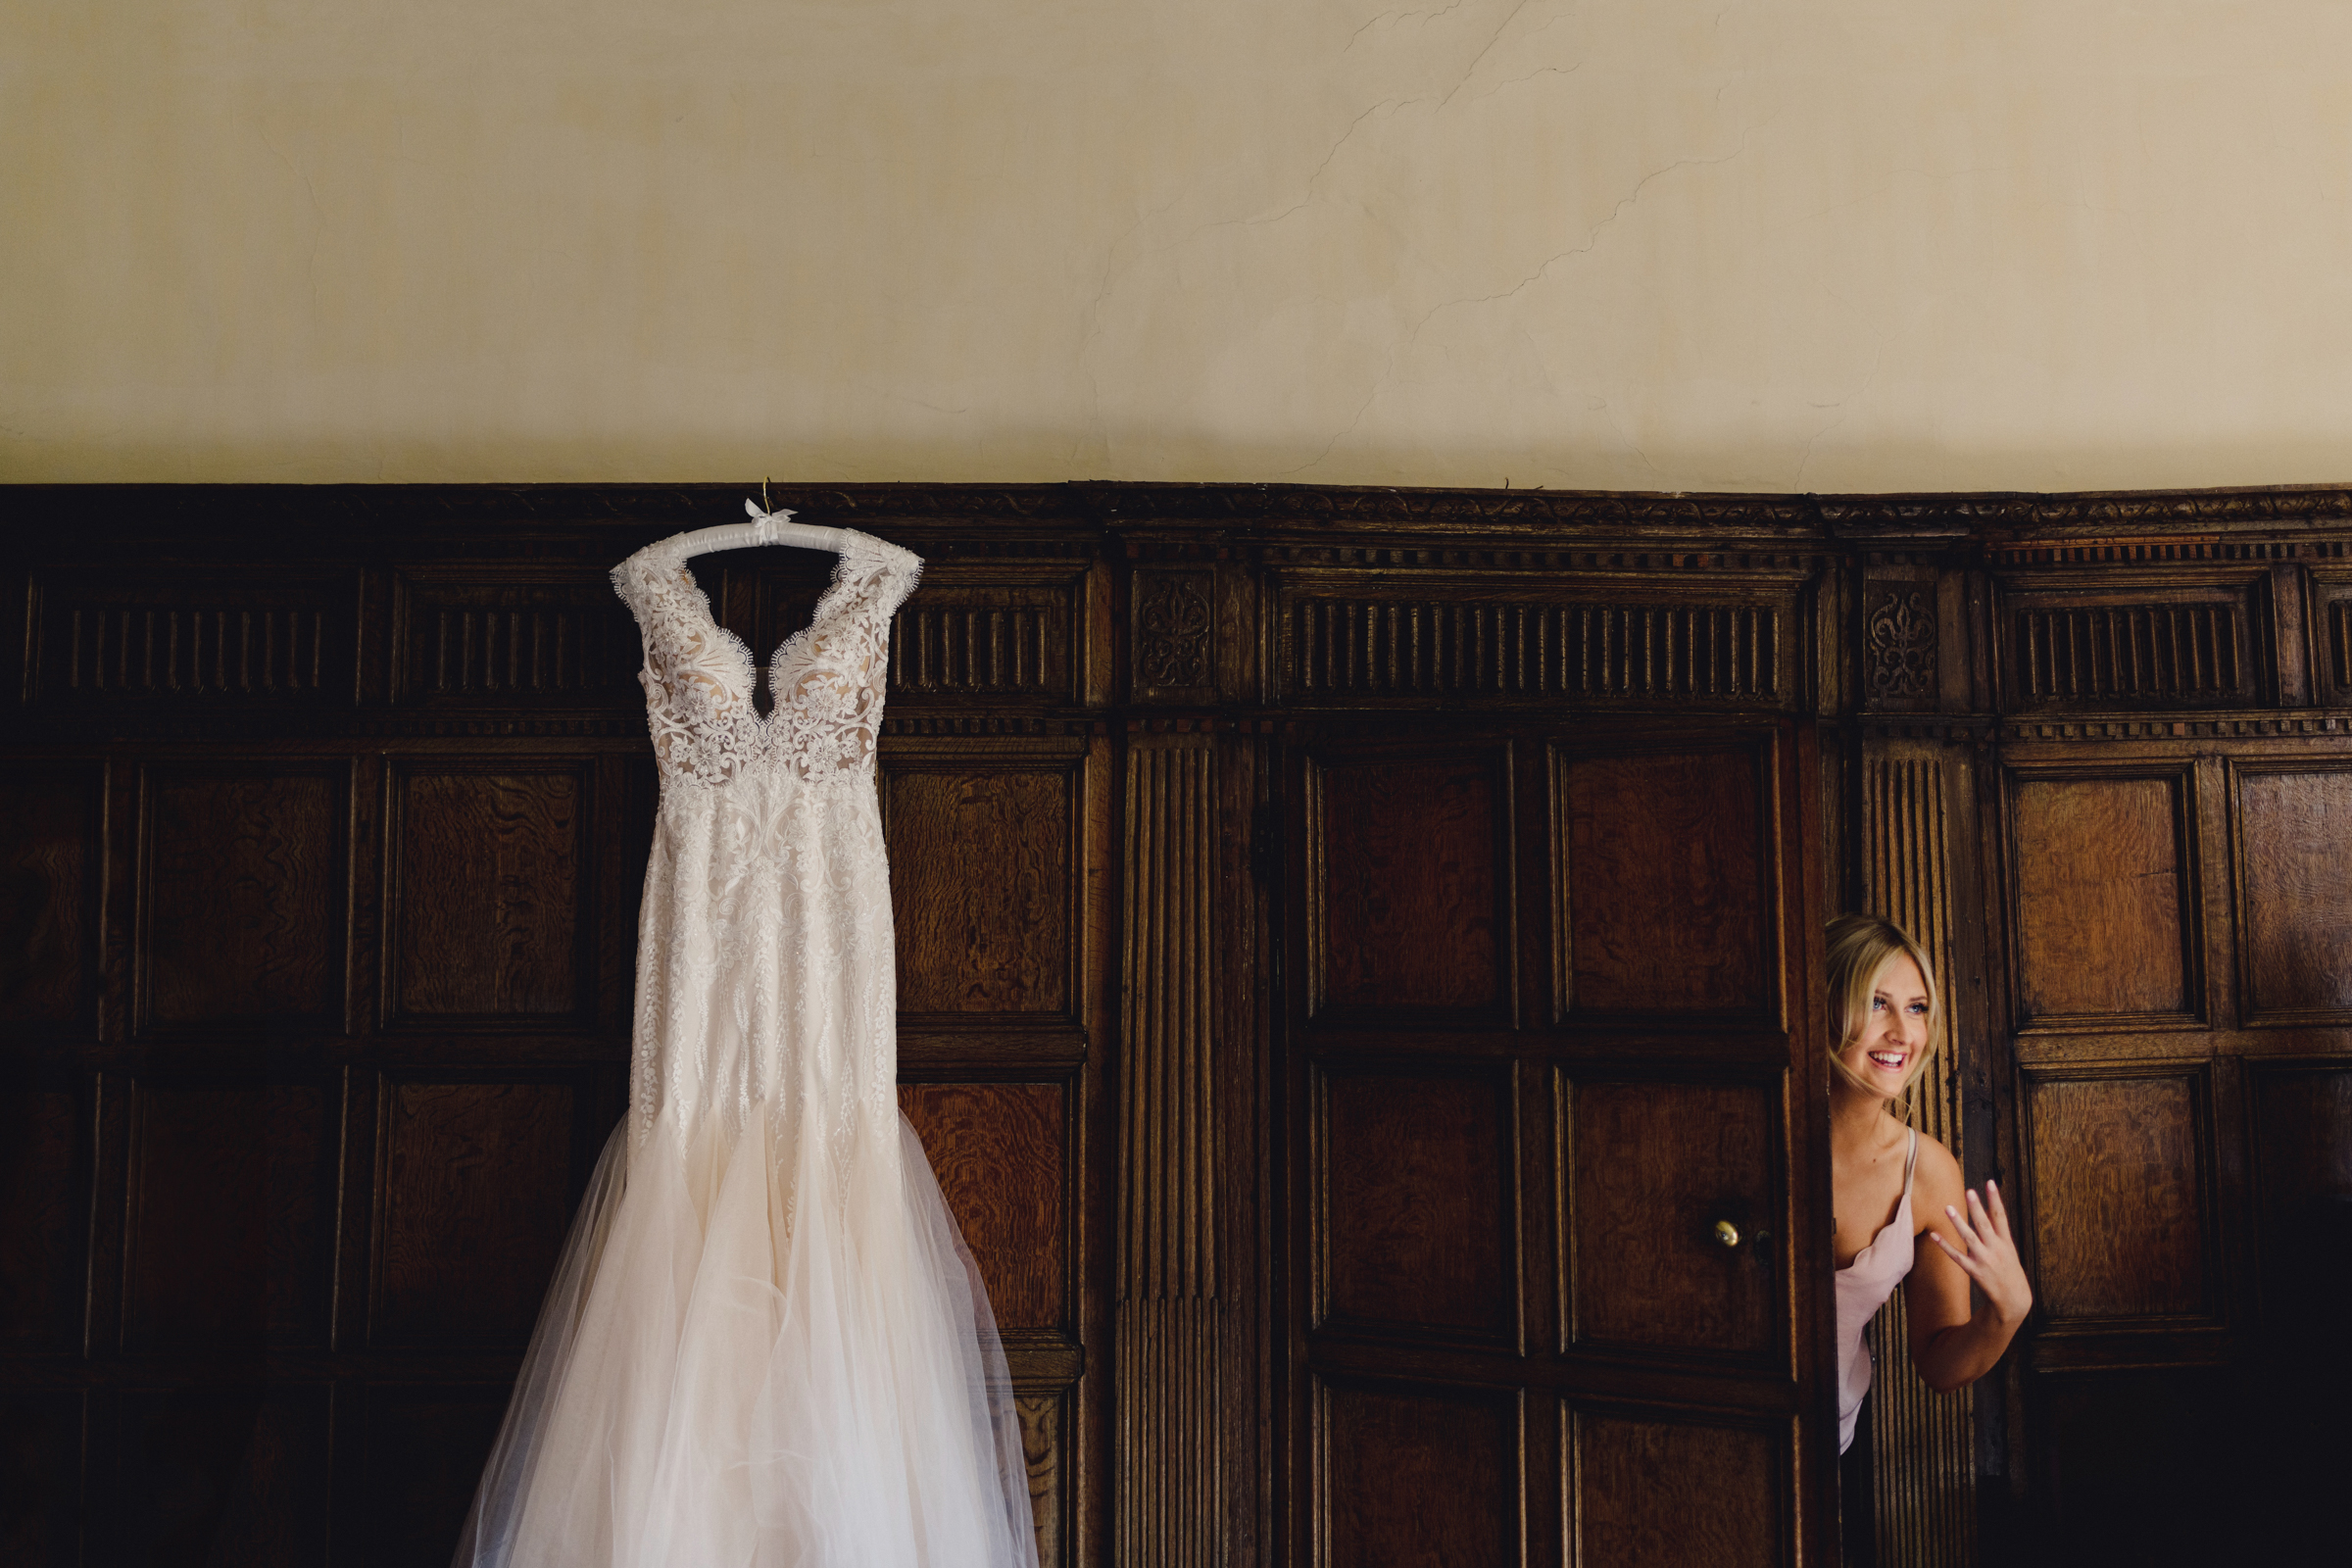 Bride entering wood paneled room for her gown - photo by MIKI Studios